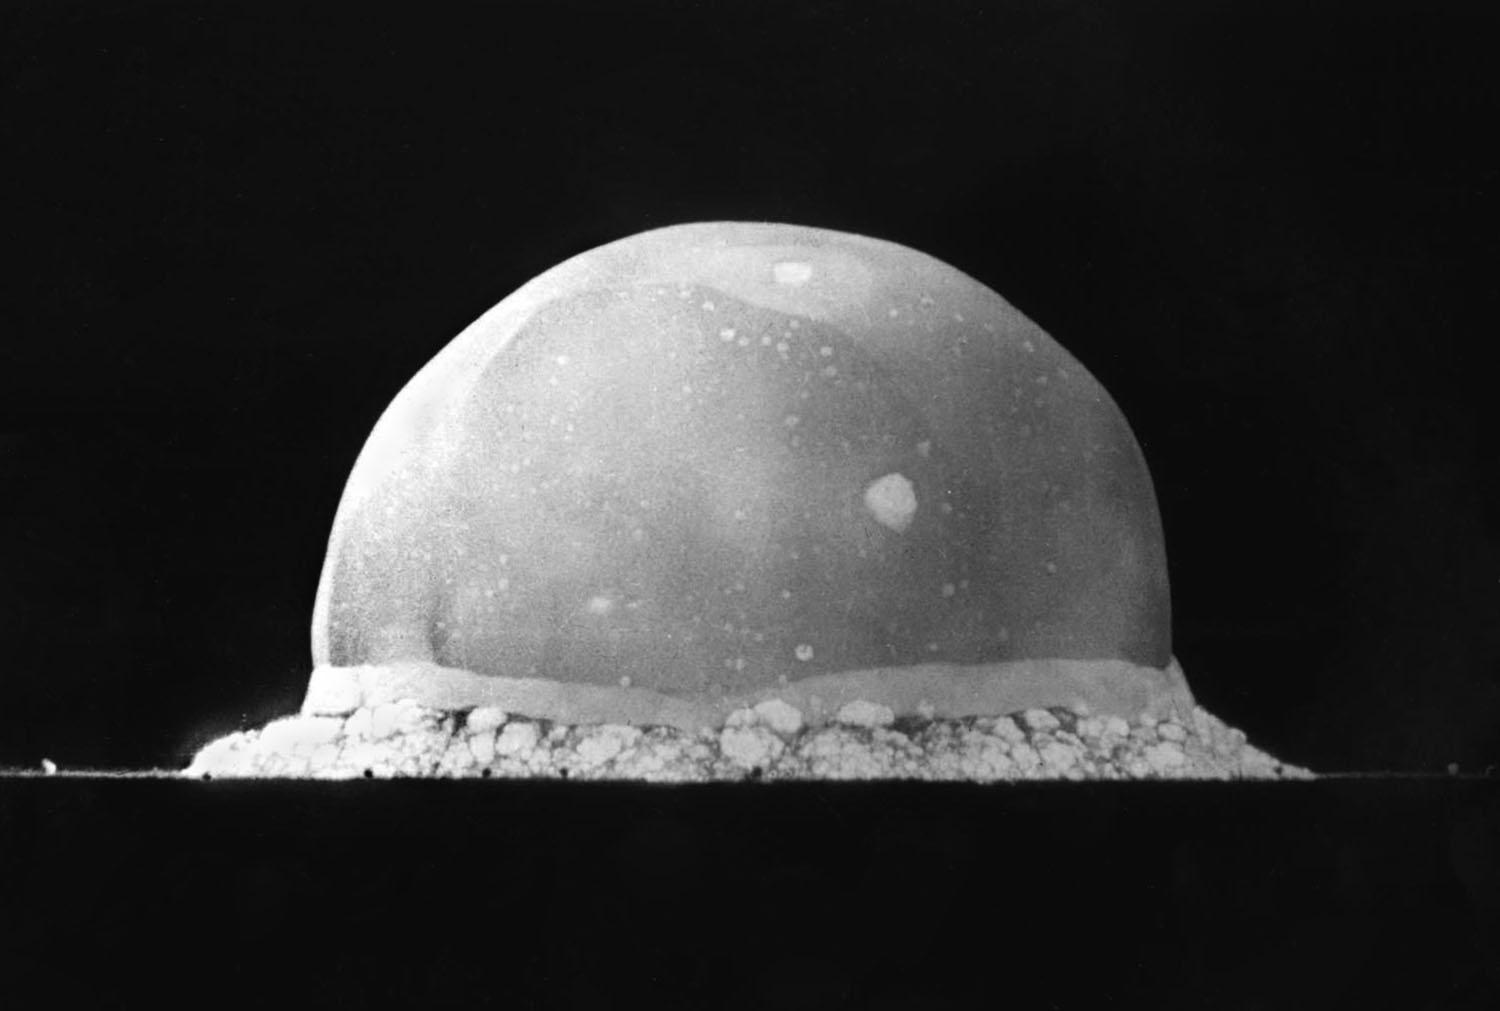 the-trinity-explosion-0-016-seconds-after-detonation-1945